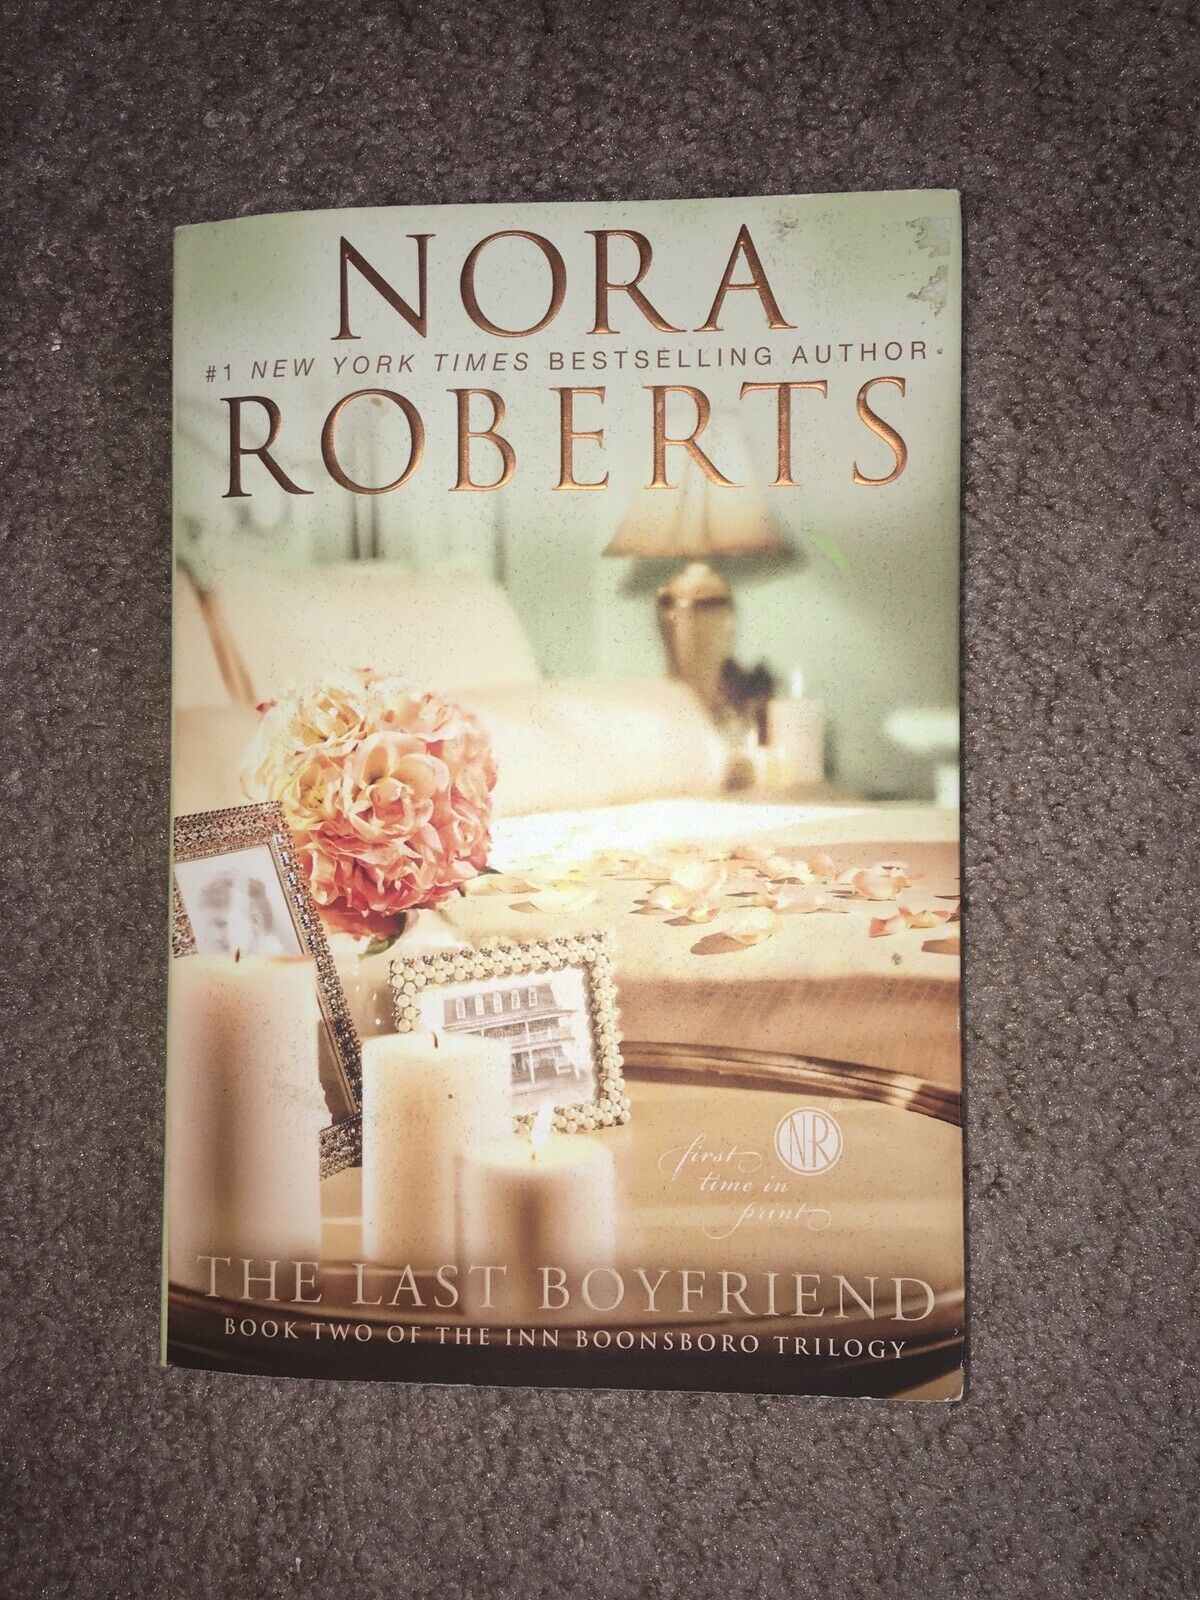 Nora Roberts Libros Pdf The Inn Boonsboro Trilogy The Last Boyfriend Bk 2 By Nora Roberts 2012 Paperback